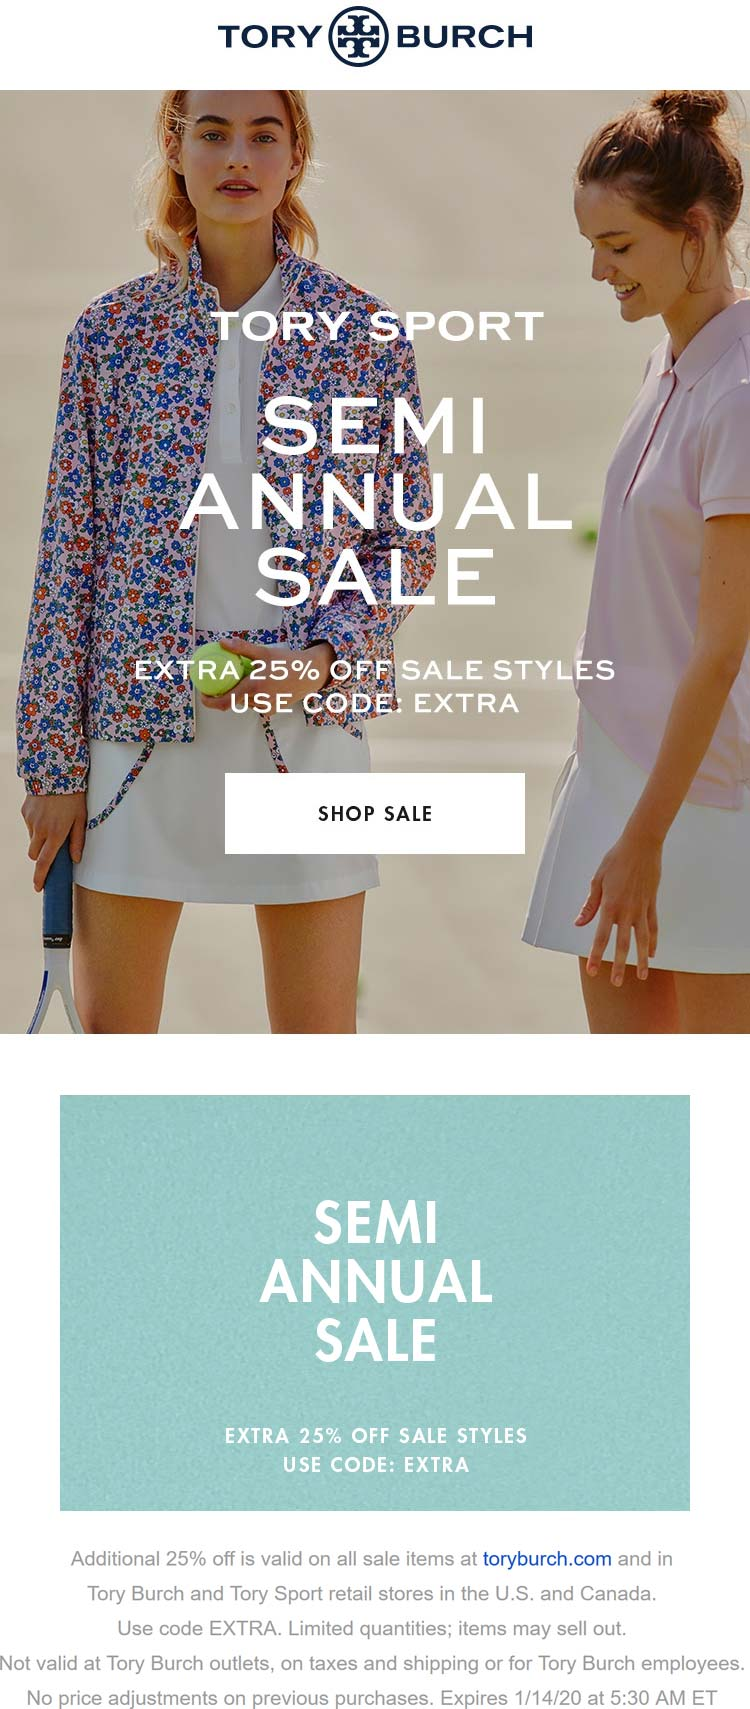 Tory Burch Coupon January 2020 Extra 25% off sale items at Tory Burch, or online via promo code EXTRA